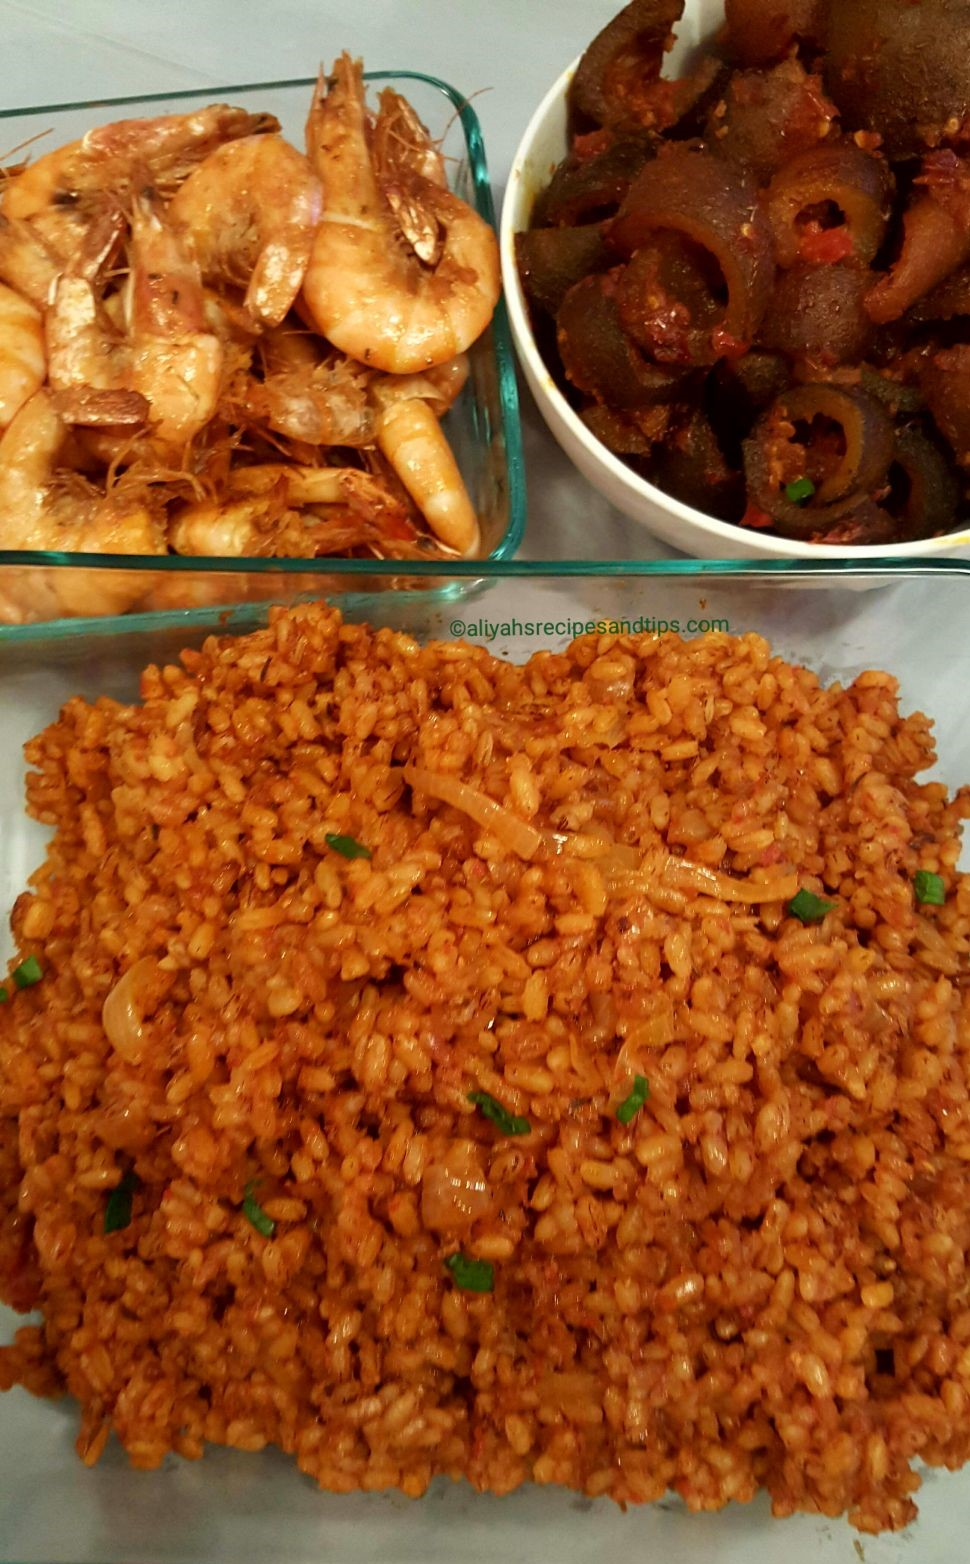 ofada rice jollof rice, ofada rice, native jollof, stew, coconut rice, coconut rice recipe, African, Nigerian jollof rice, coconut milk, coconut jollof ricr, Tybbbe, cook ofada, Nigerian, Nigeria, Ofada sauce, party jollof rice, basmati rice, Brown rice, Brown jollof rice, sisi jemimah